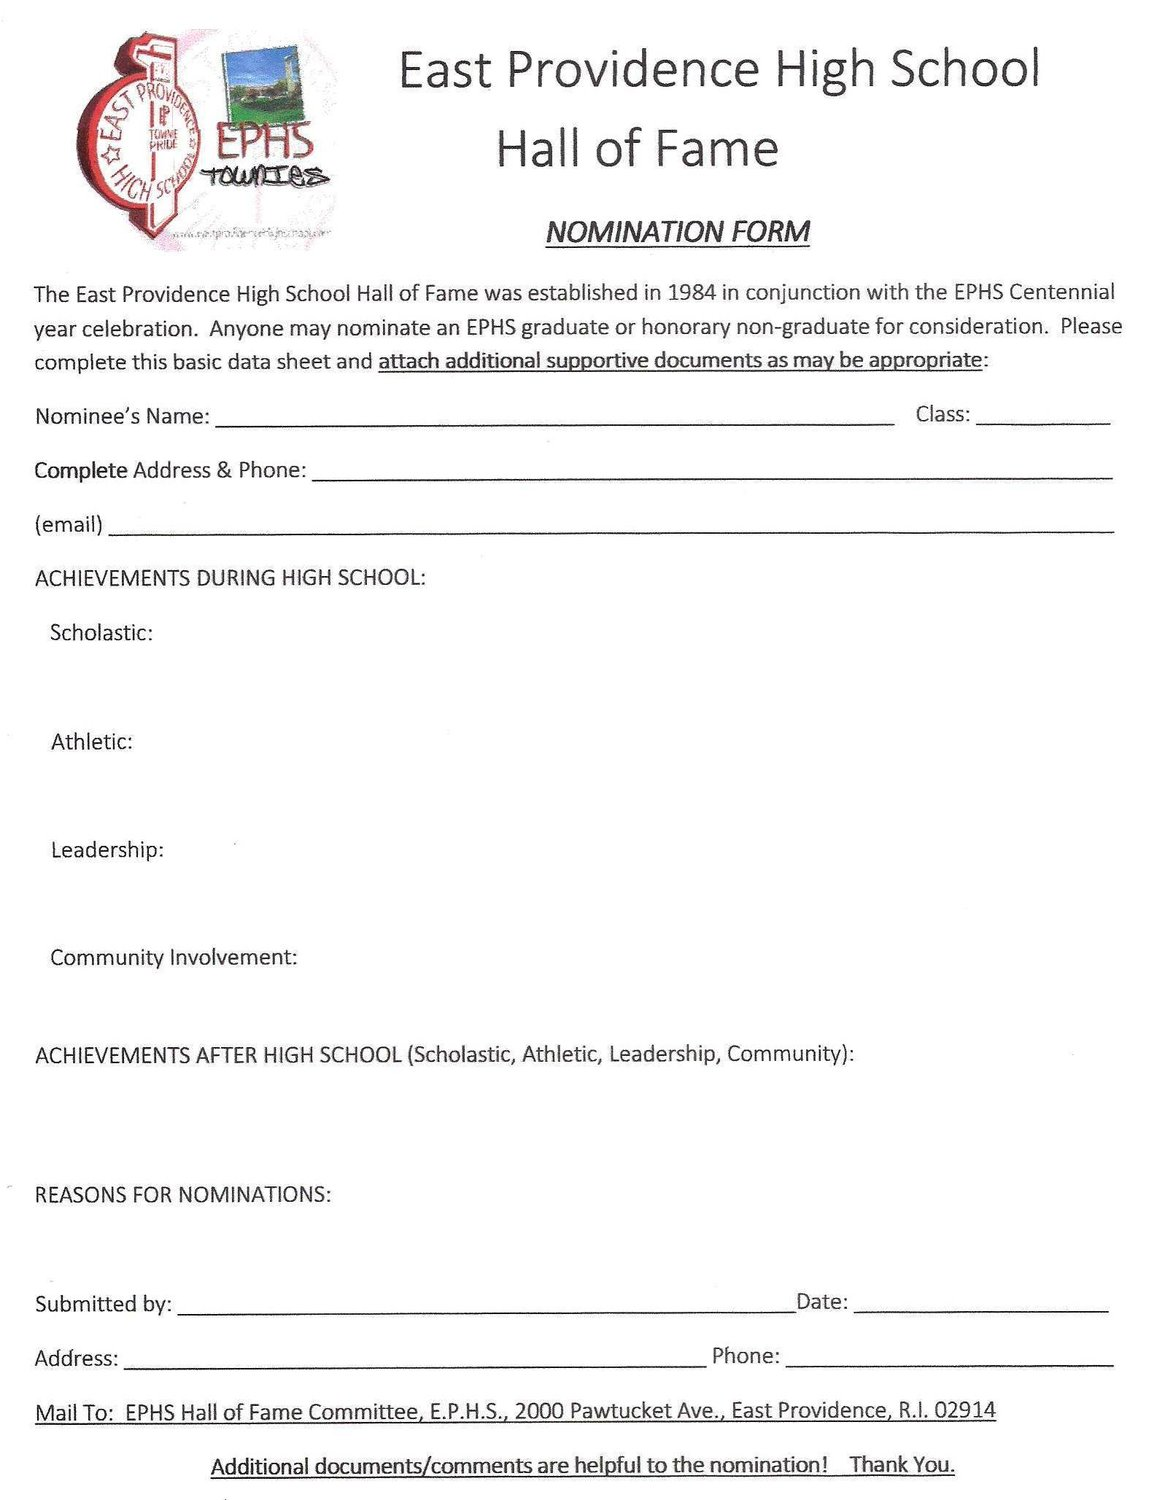 Download or copy and complete this form.  Send to EPHS Main Office, 2000 Pawtucket ave., East Providence, RI 02914.